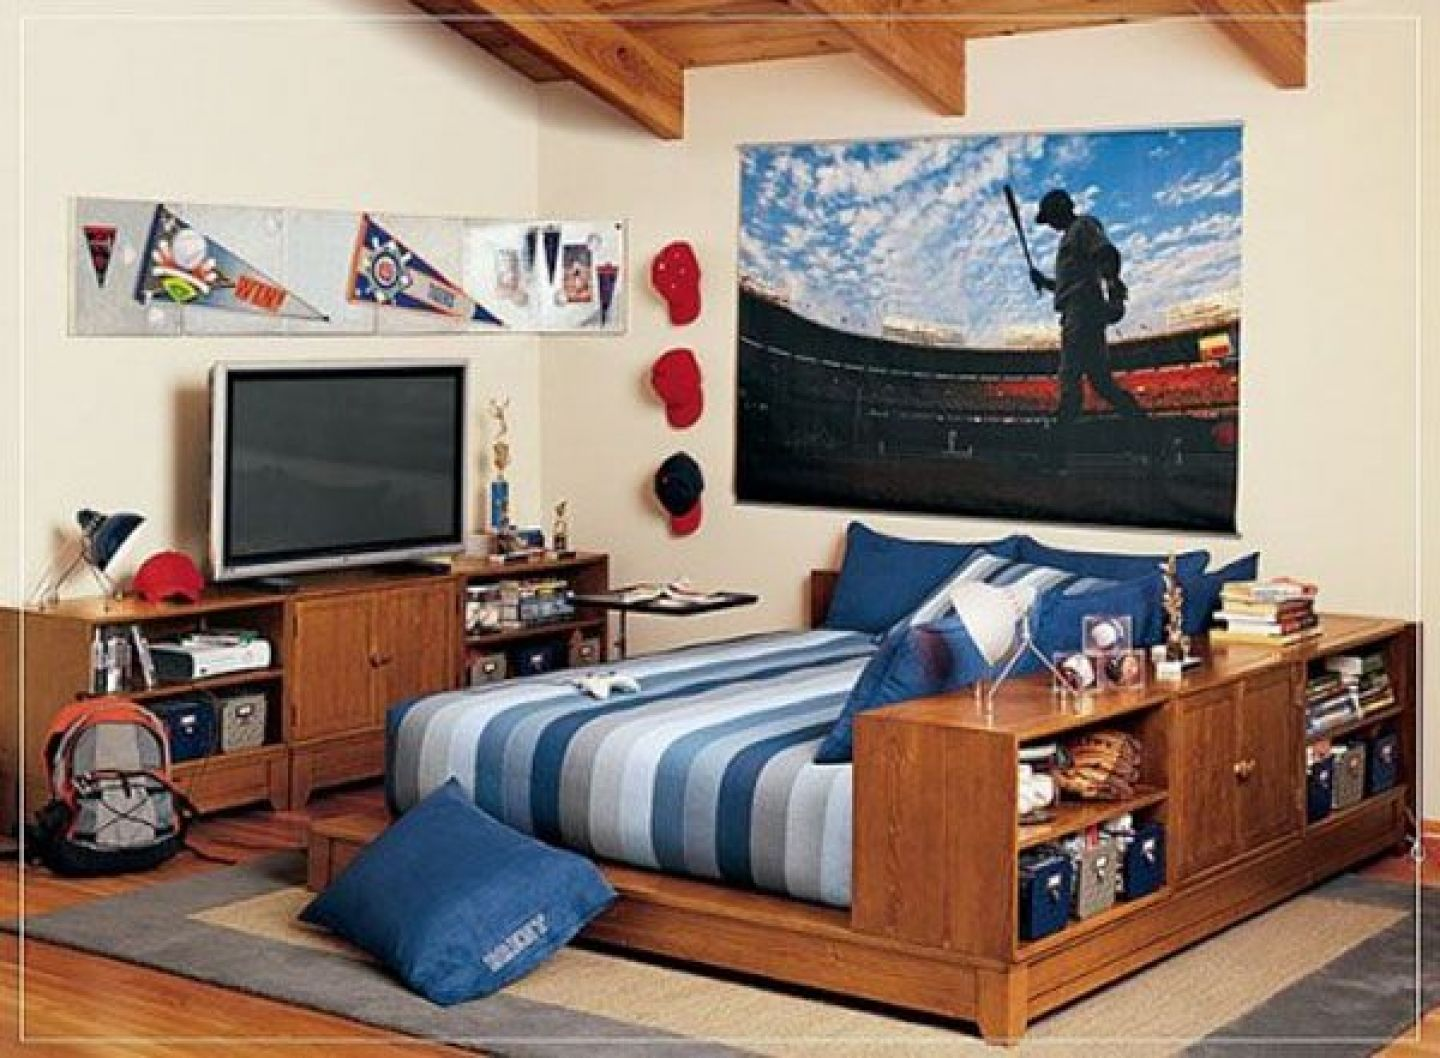 Wonderful Design Boy Bedroom Ideas With Softball Accessories And Led Tv Also Table Lamp